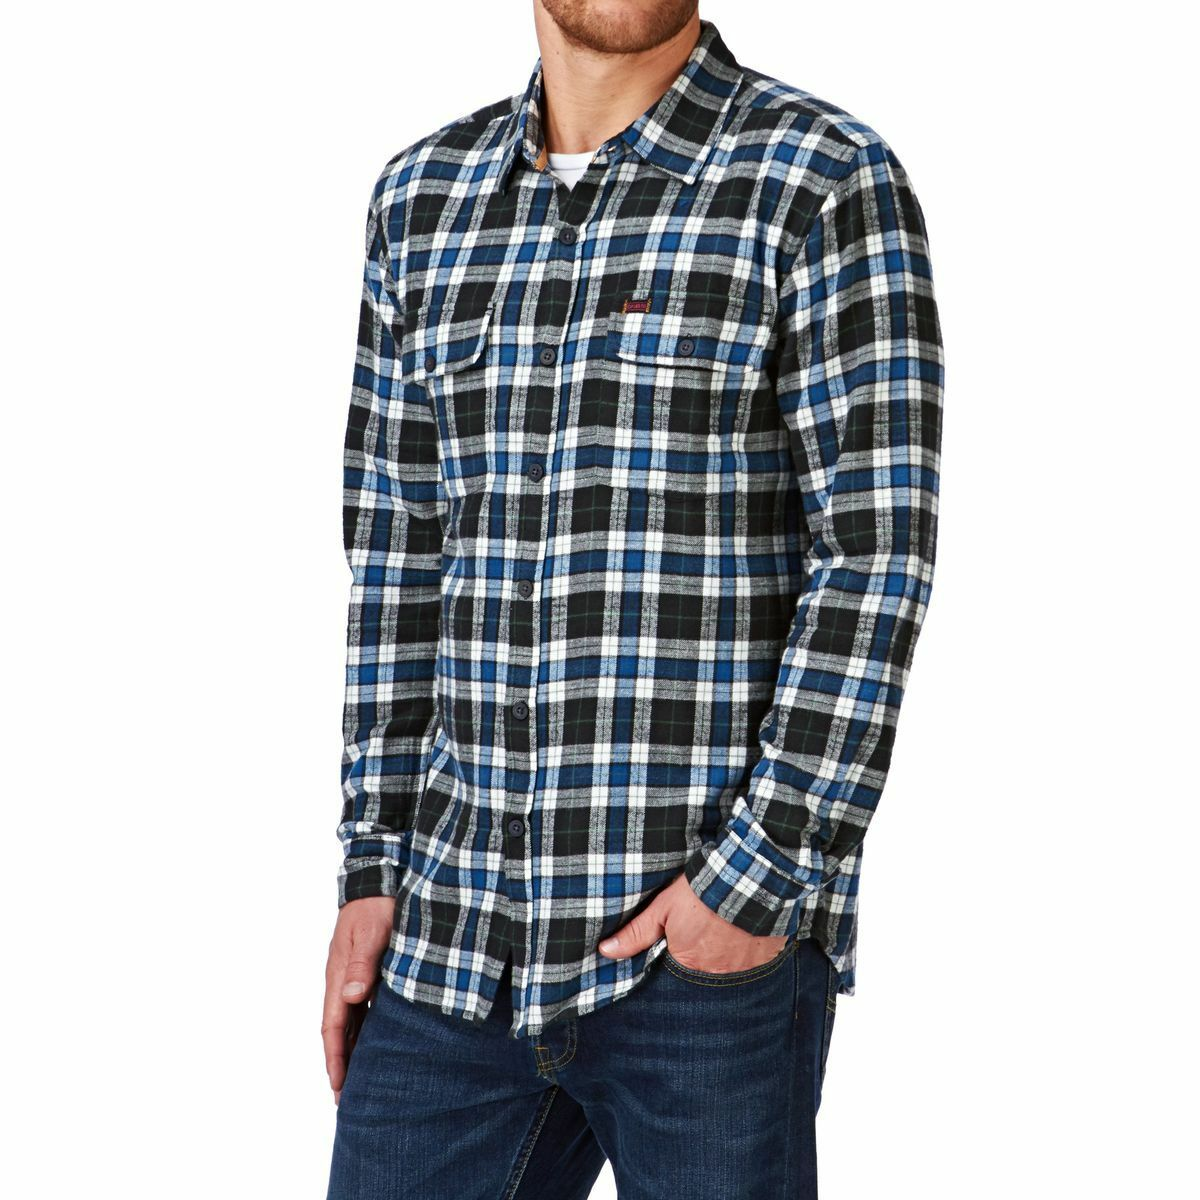 BNWT Captain Fin Co. Slub Flannel Shirt  Medium